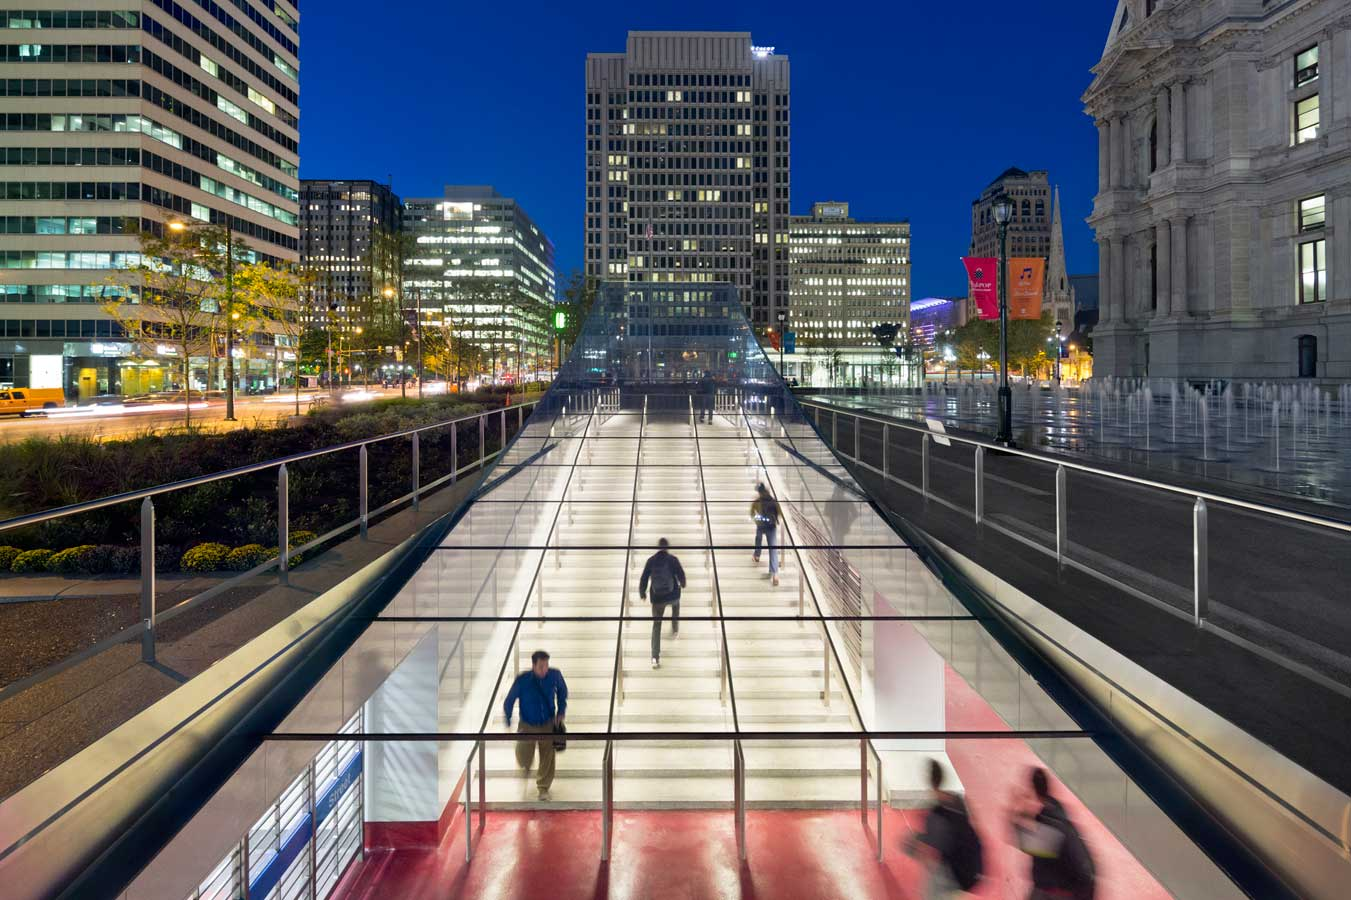 <p>Improved light quality in the concourse, combined with illuminated access points and a new way-finding system all contribute to safer and clearer passage. <br><small>© James Ewing Photography</small></p>